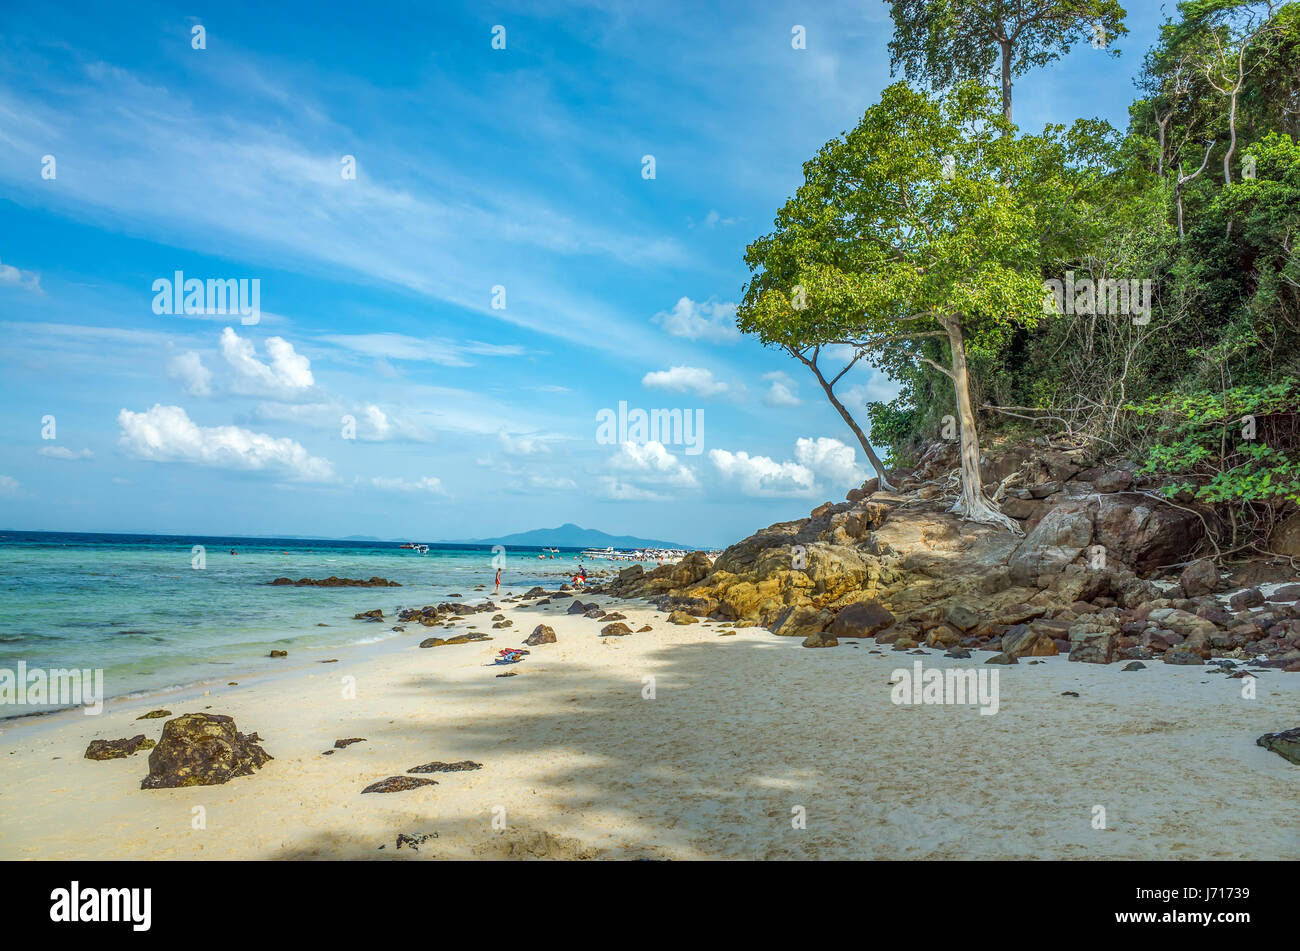 Coast of Phuket, Thailand - Stock Image